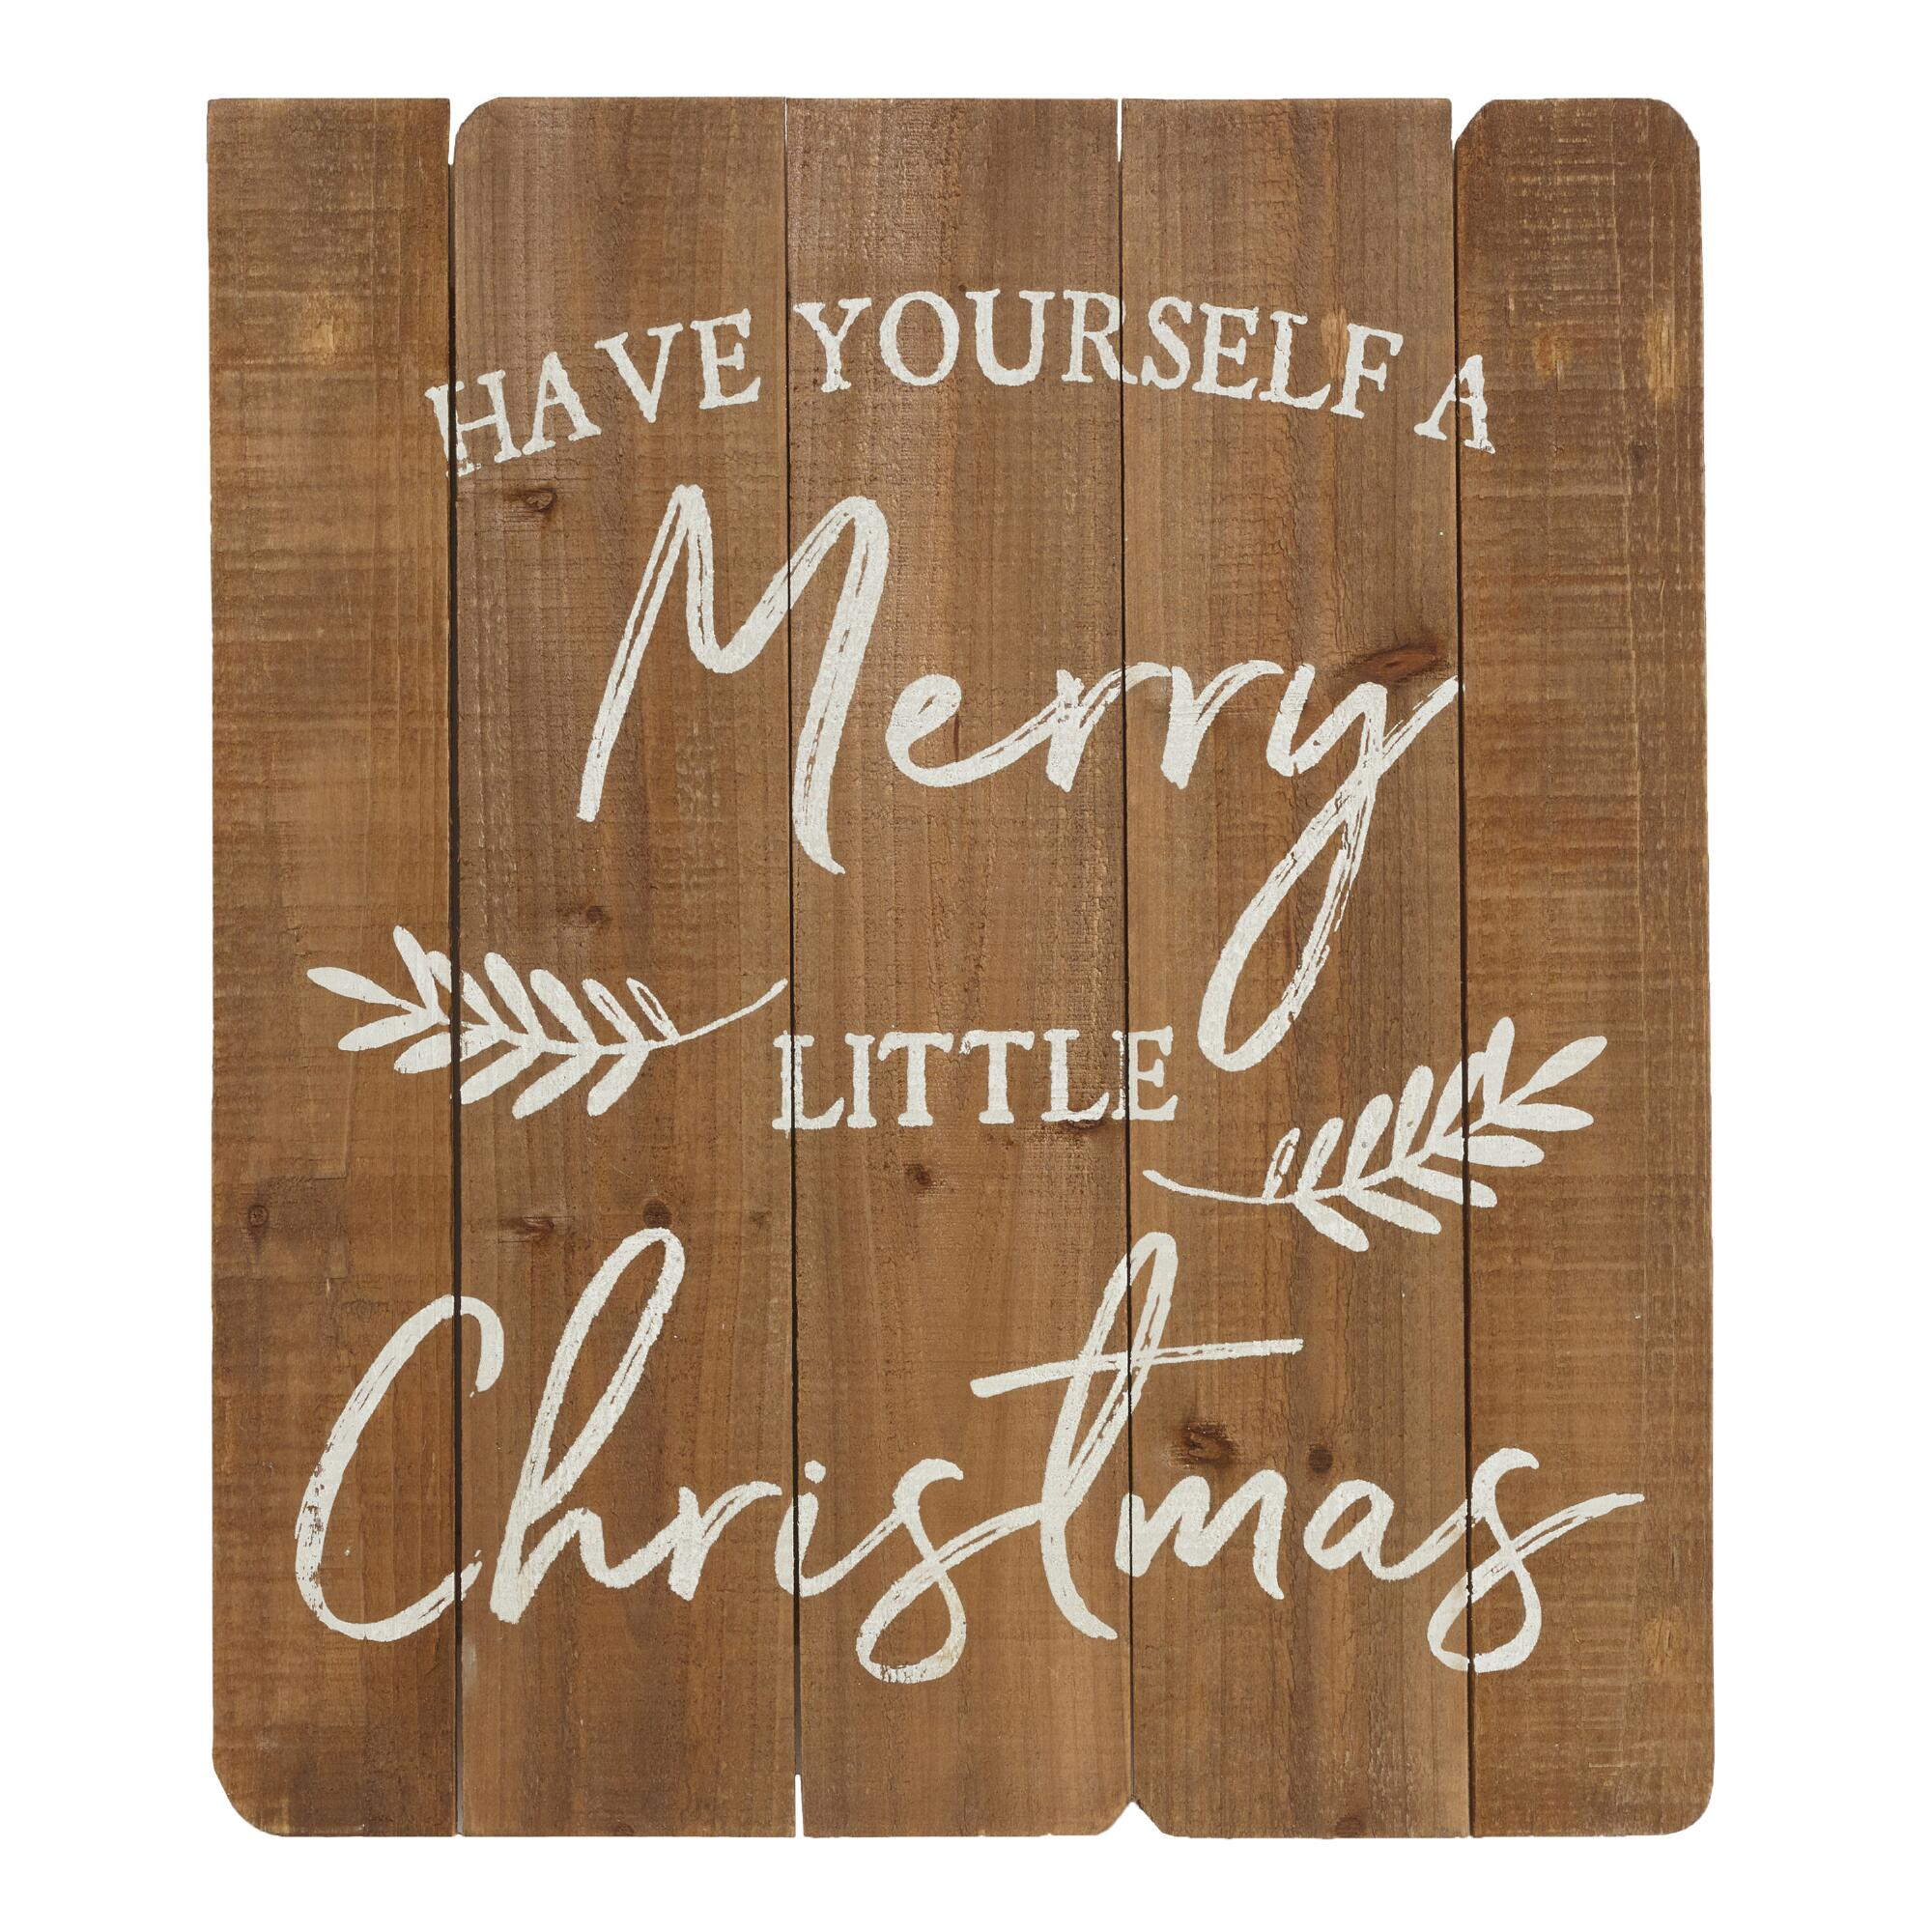 Have Yourself A Merry Little Christmas Wood Sign $21.99